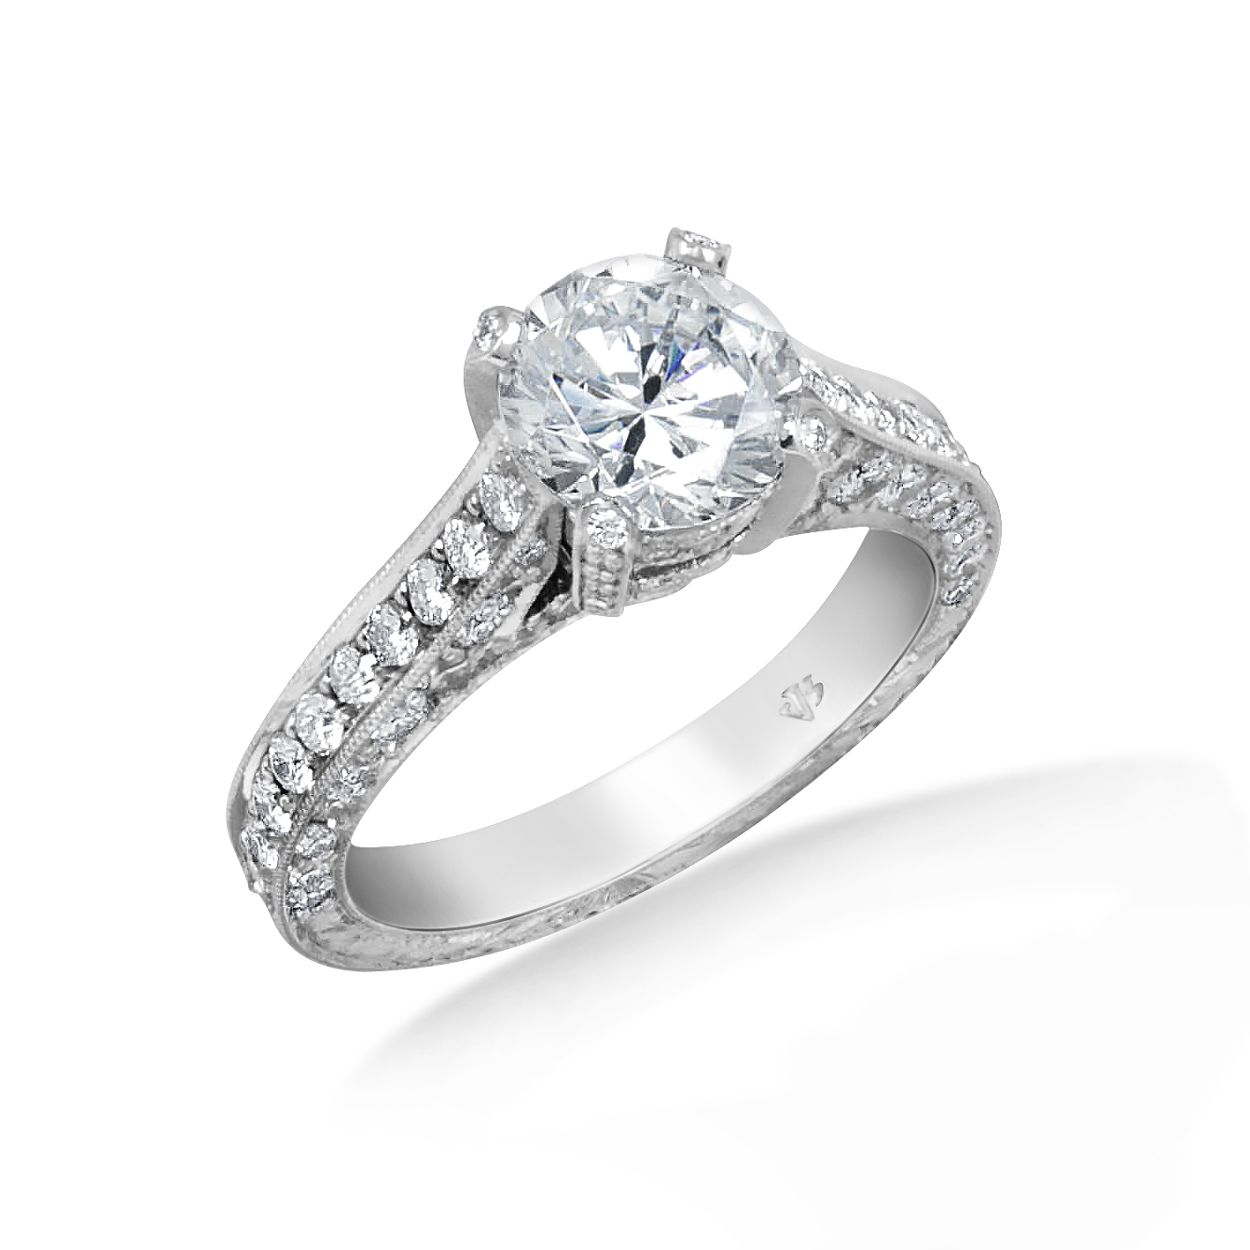 Chicago Bridal Marshall Pierce Company Jack Kelege Cathedral Engagement Ring Priced From Cathedral Engagement Rings Stunning Engagement Ring Engagement